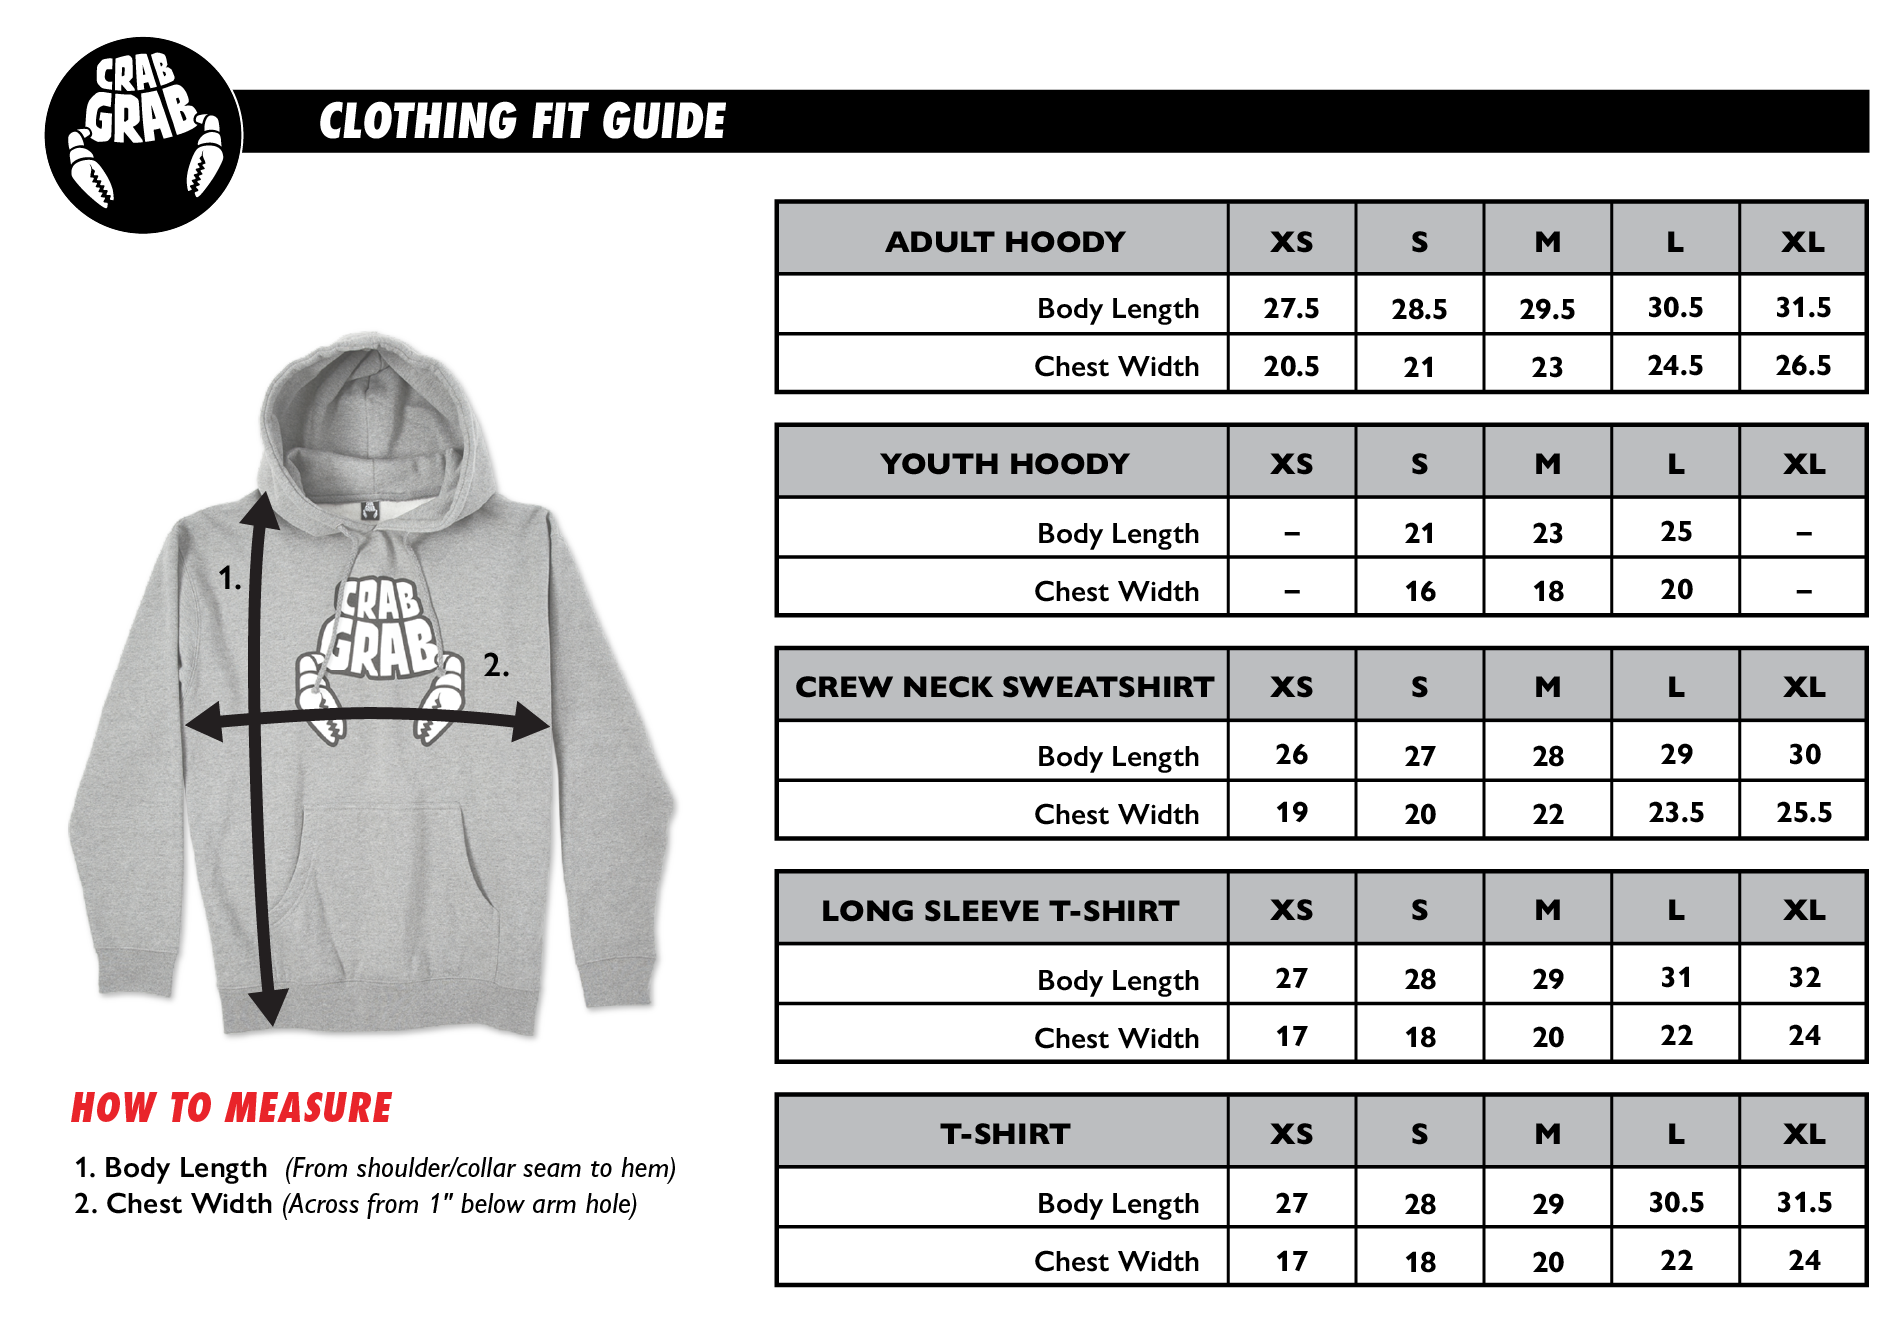 Crab Grab Clothing Fit Guide